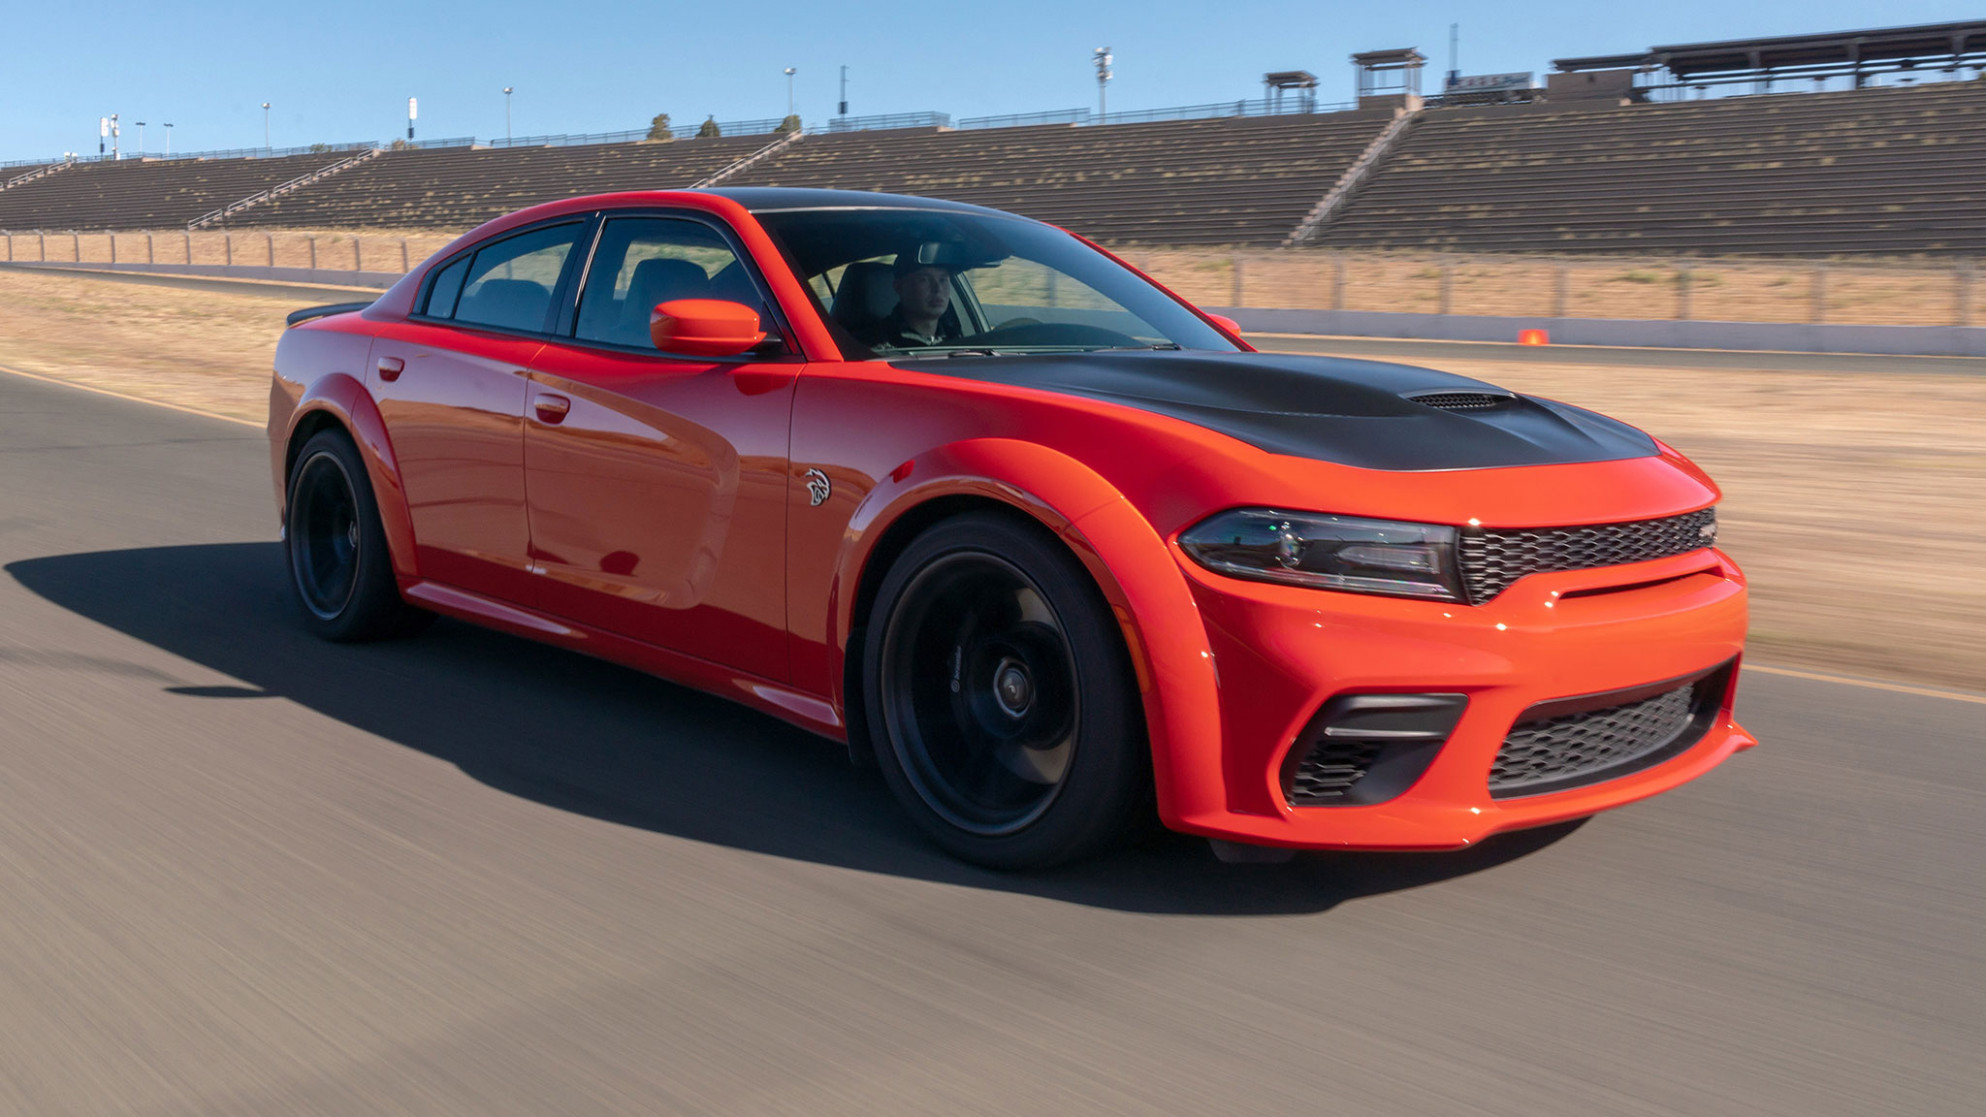 12 Dodge Charger Scat Pack Widebody First Drive: The One You ..